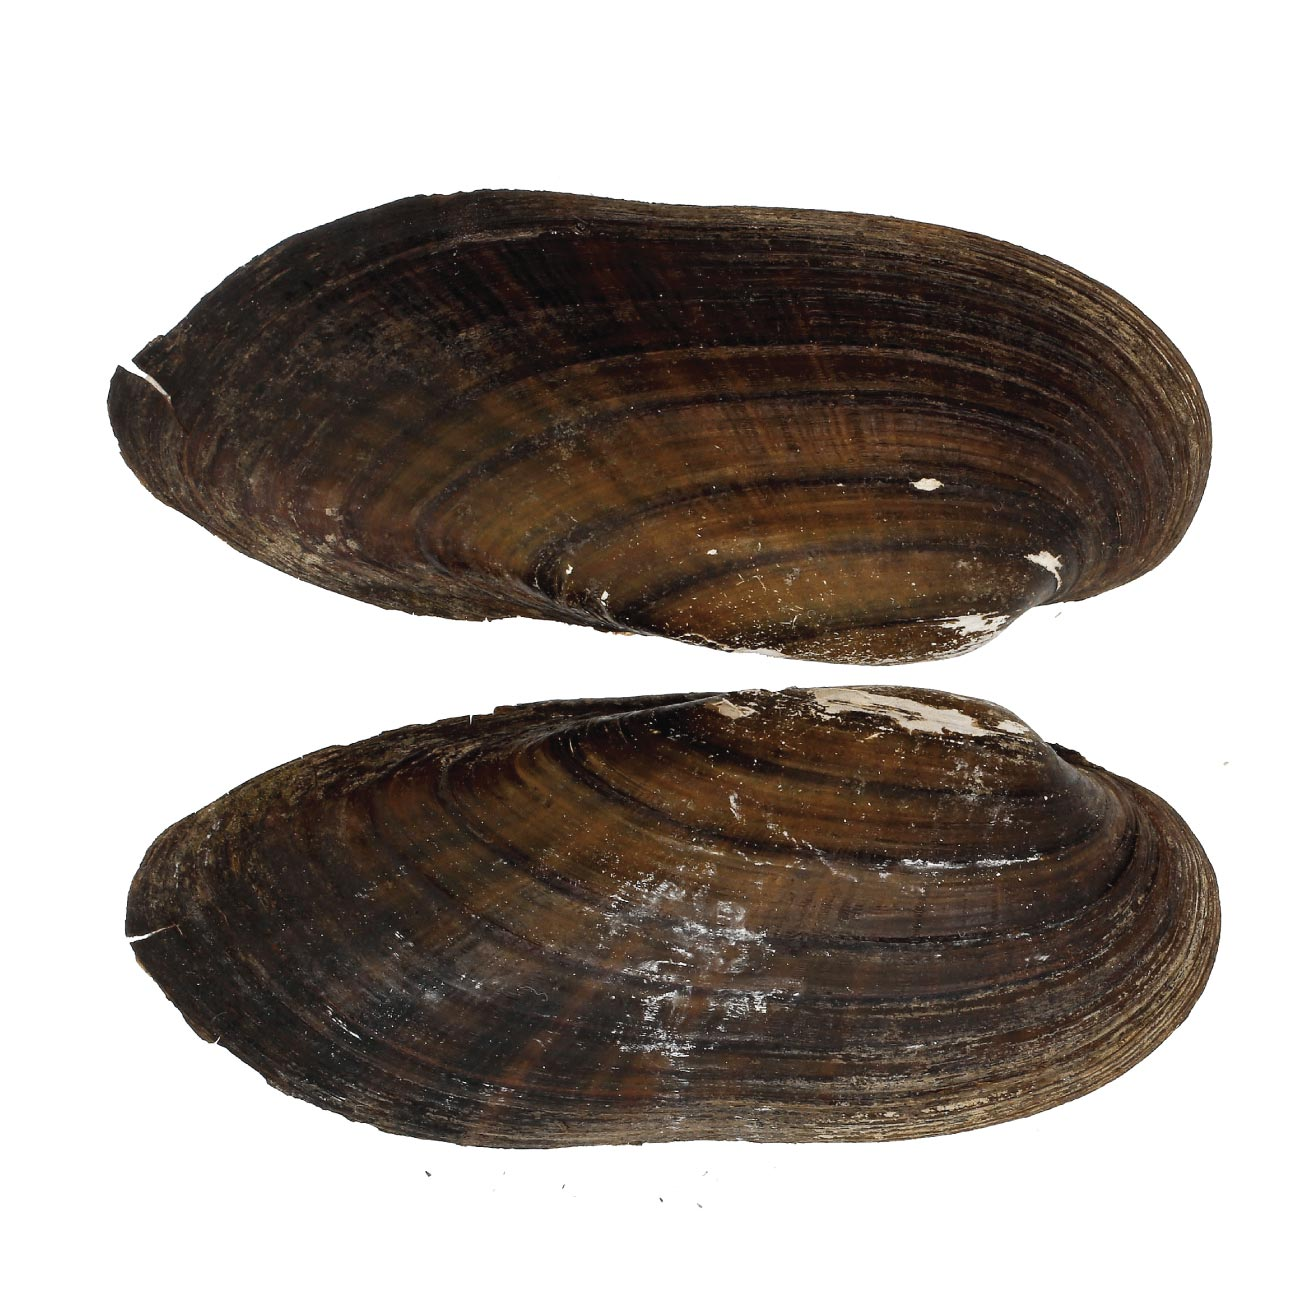 Large mussel shell specimen